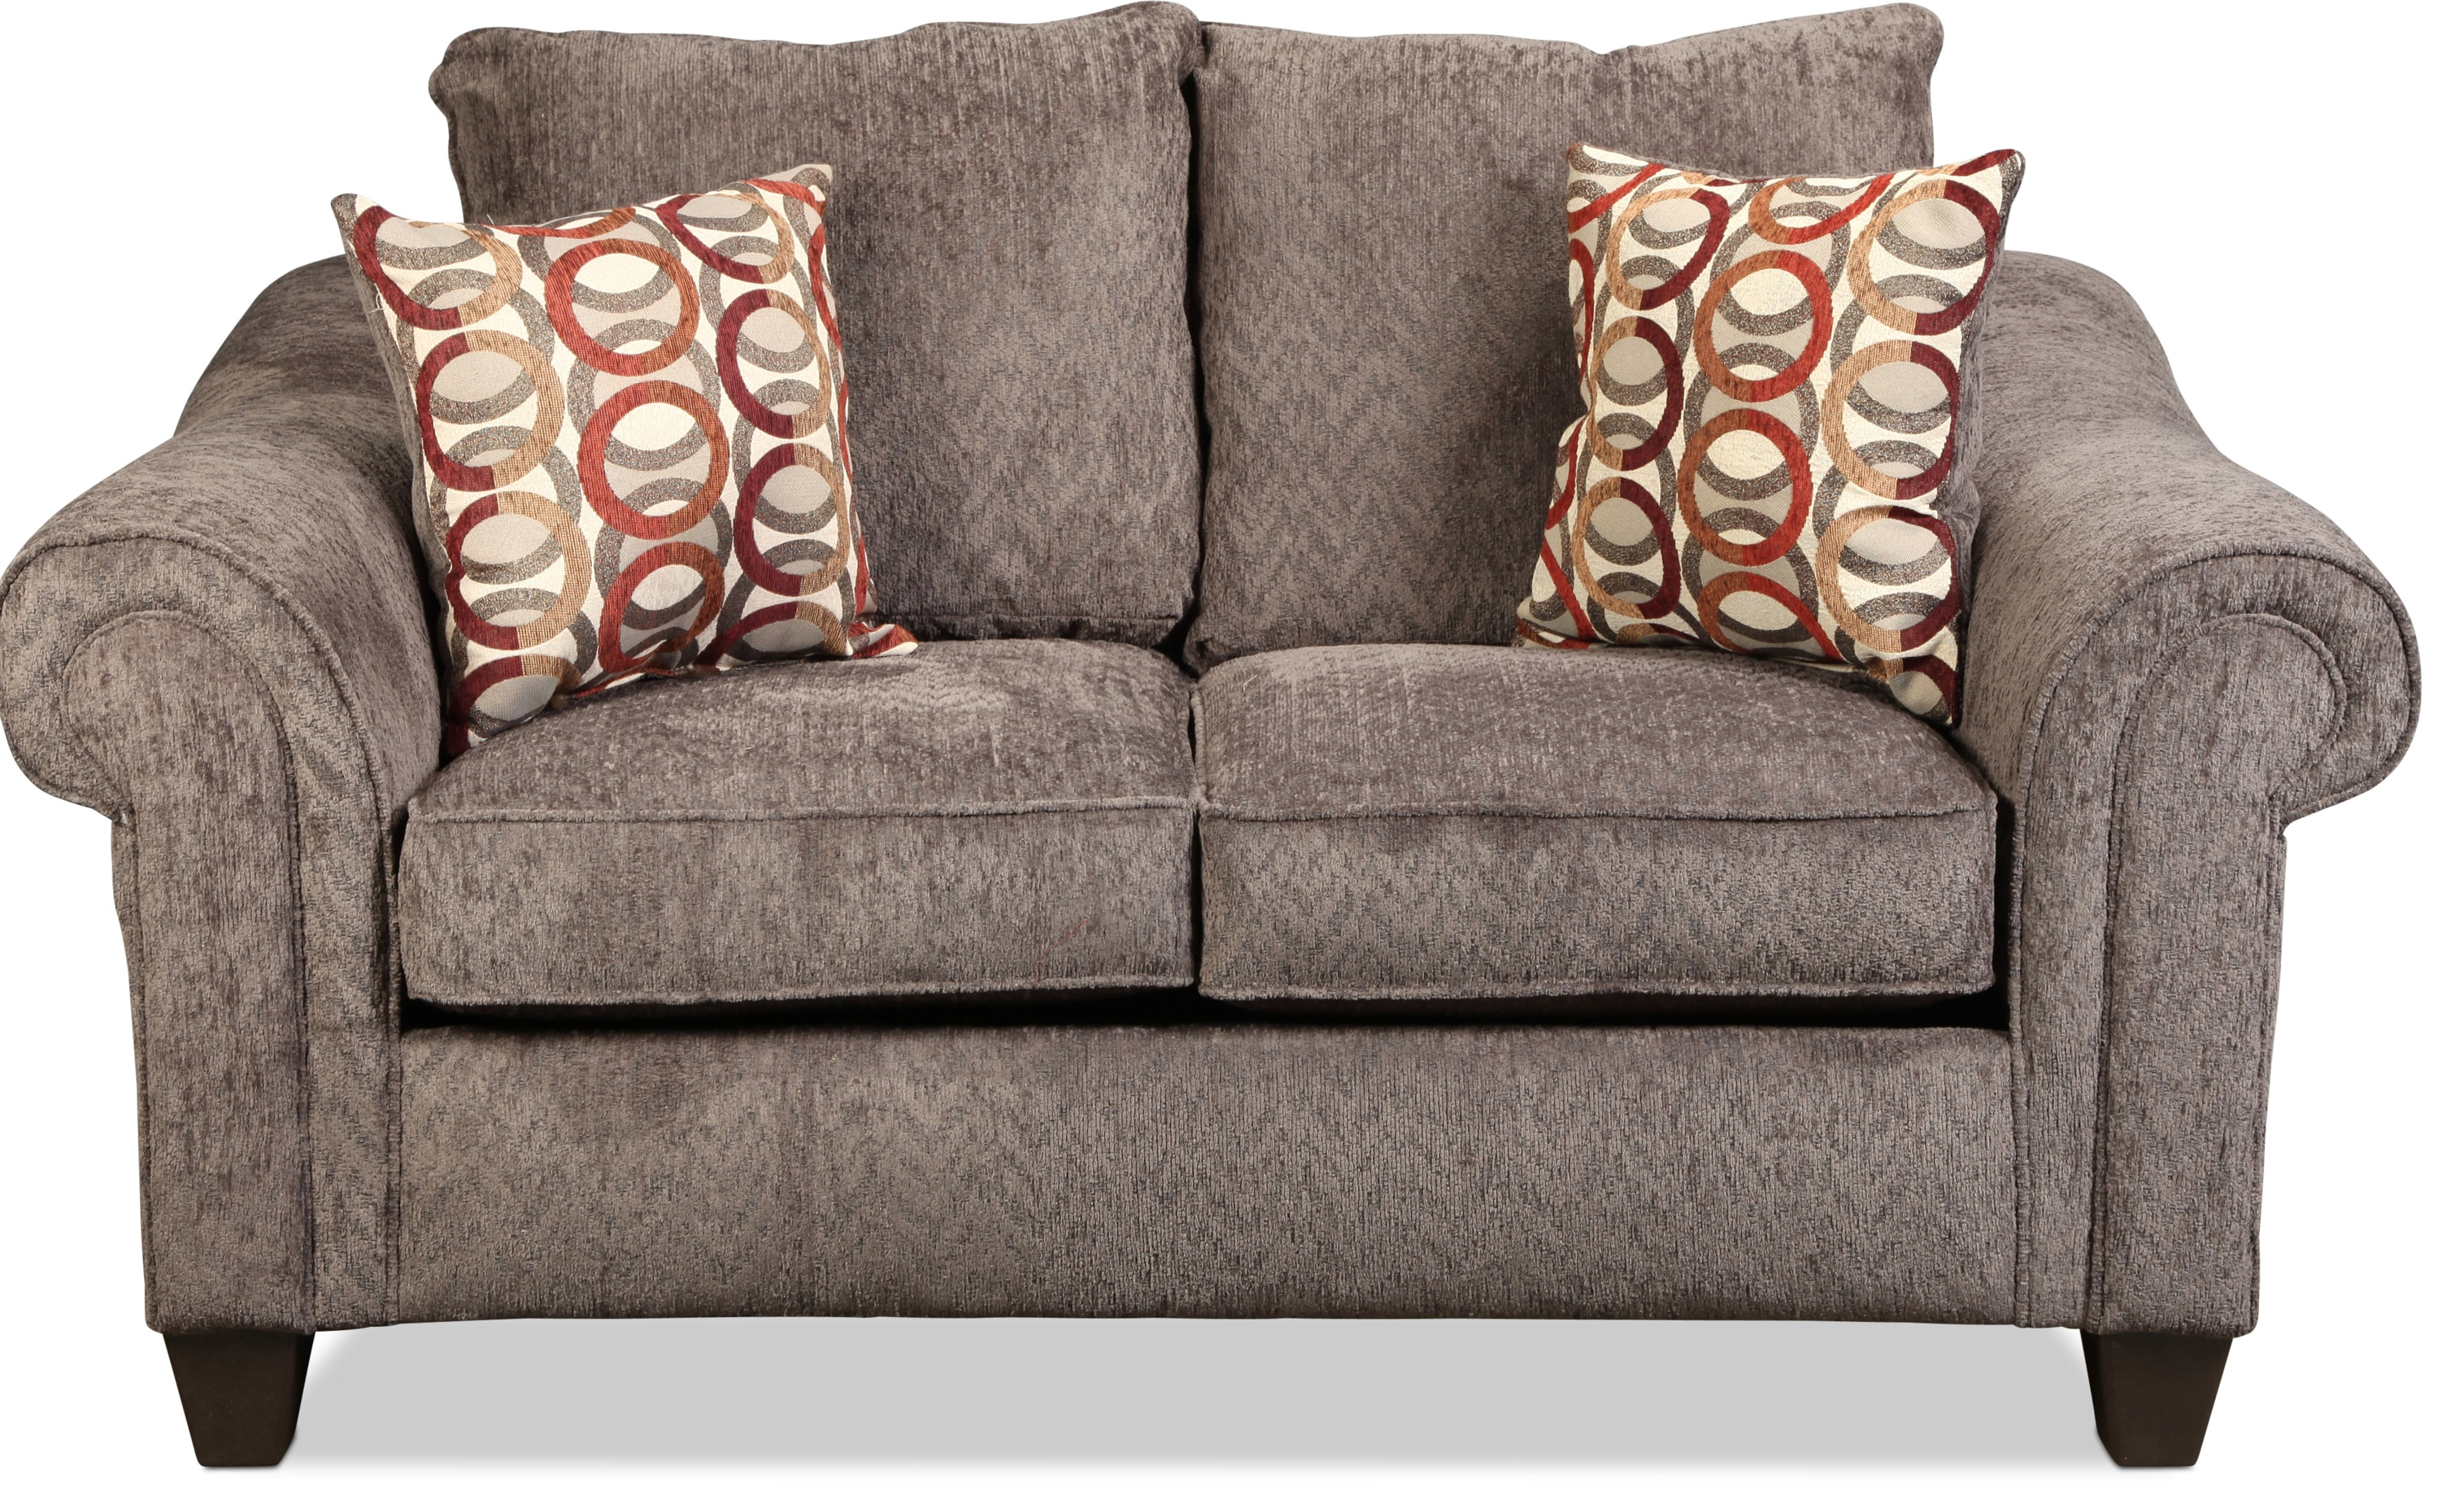 Connor Loveseat - Charcoal